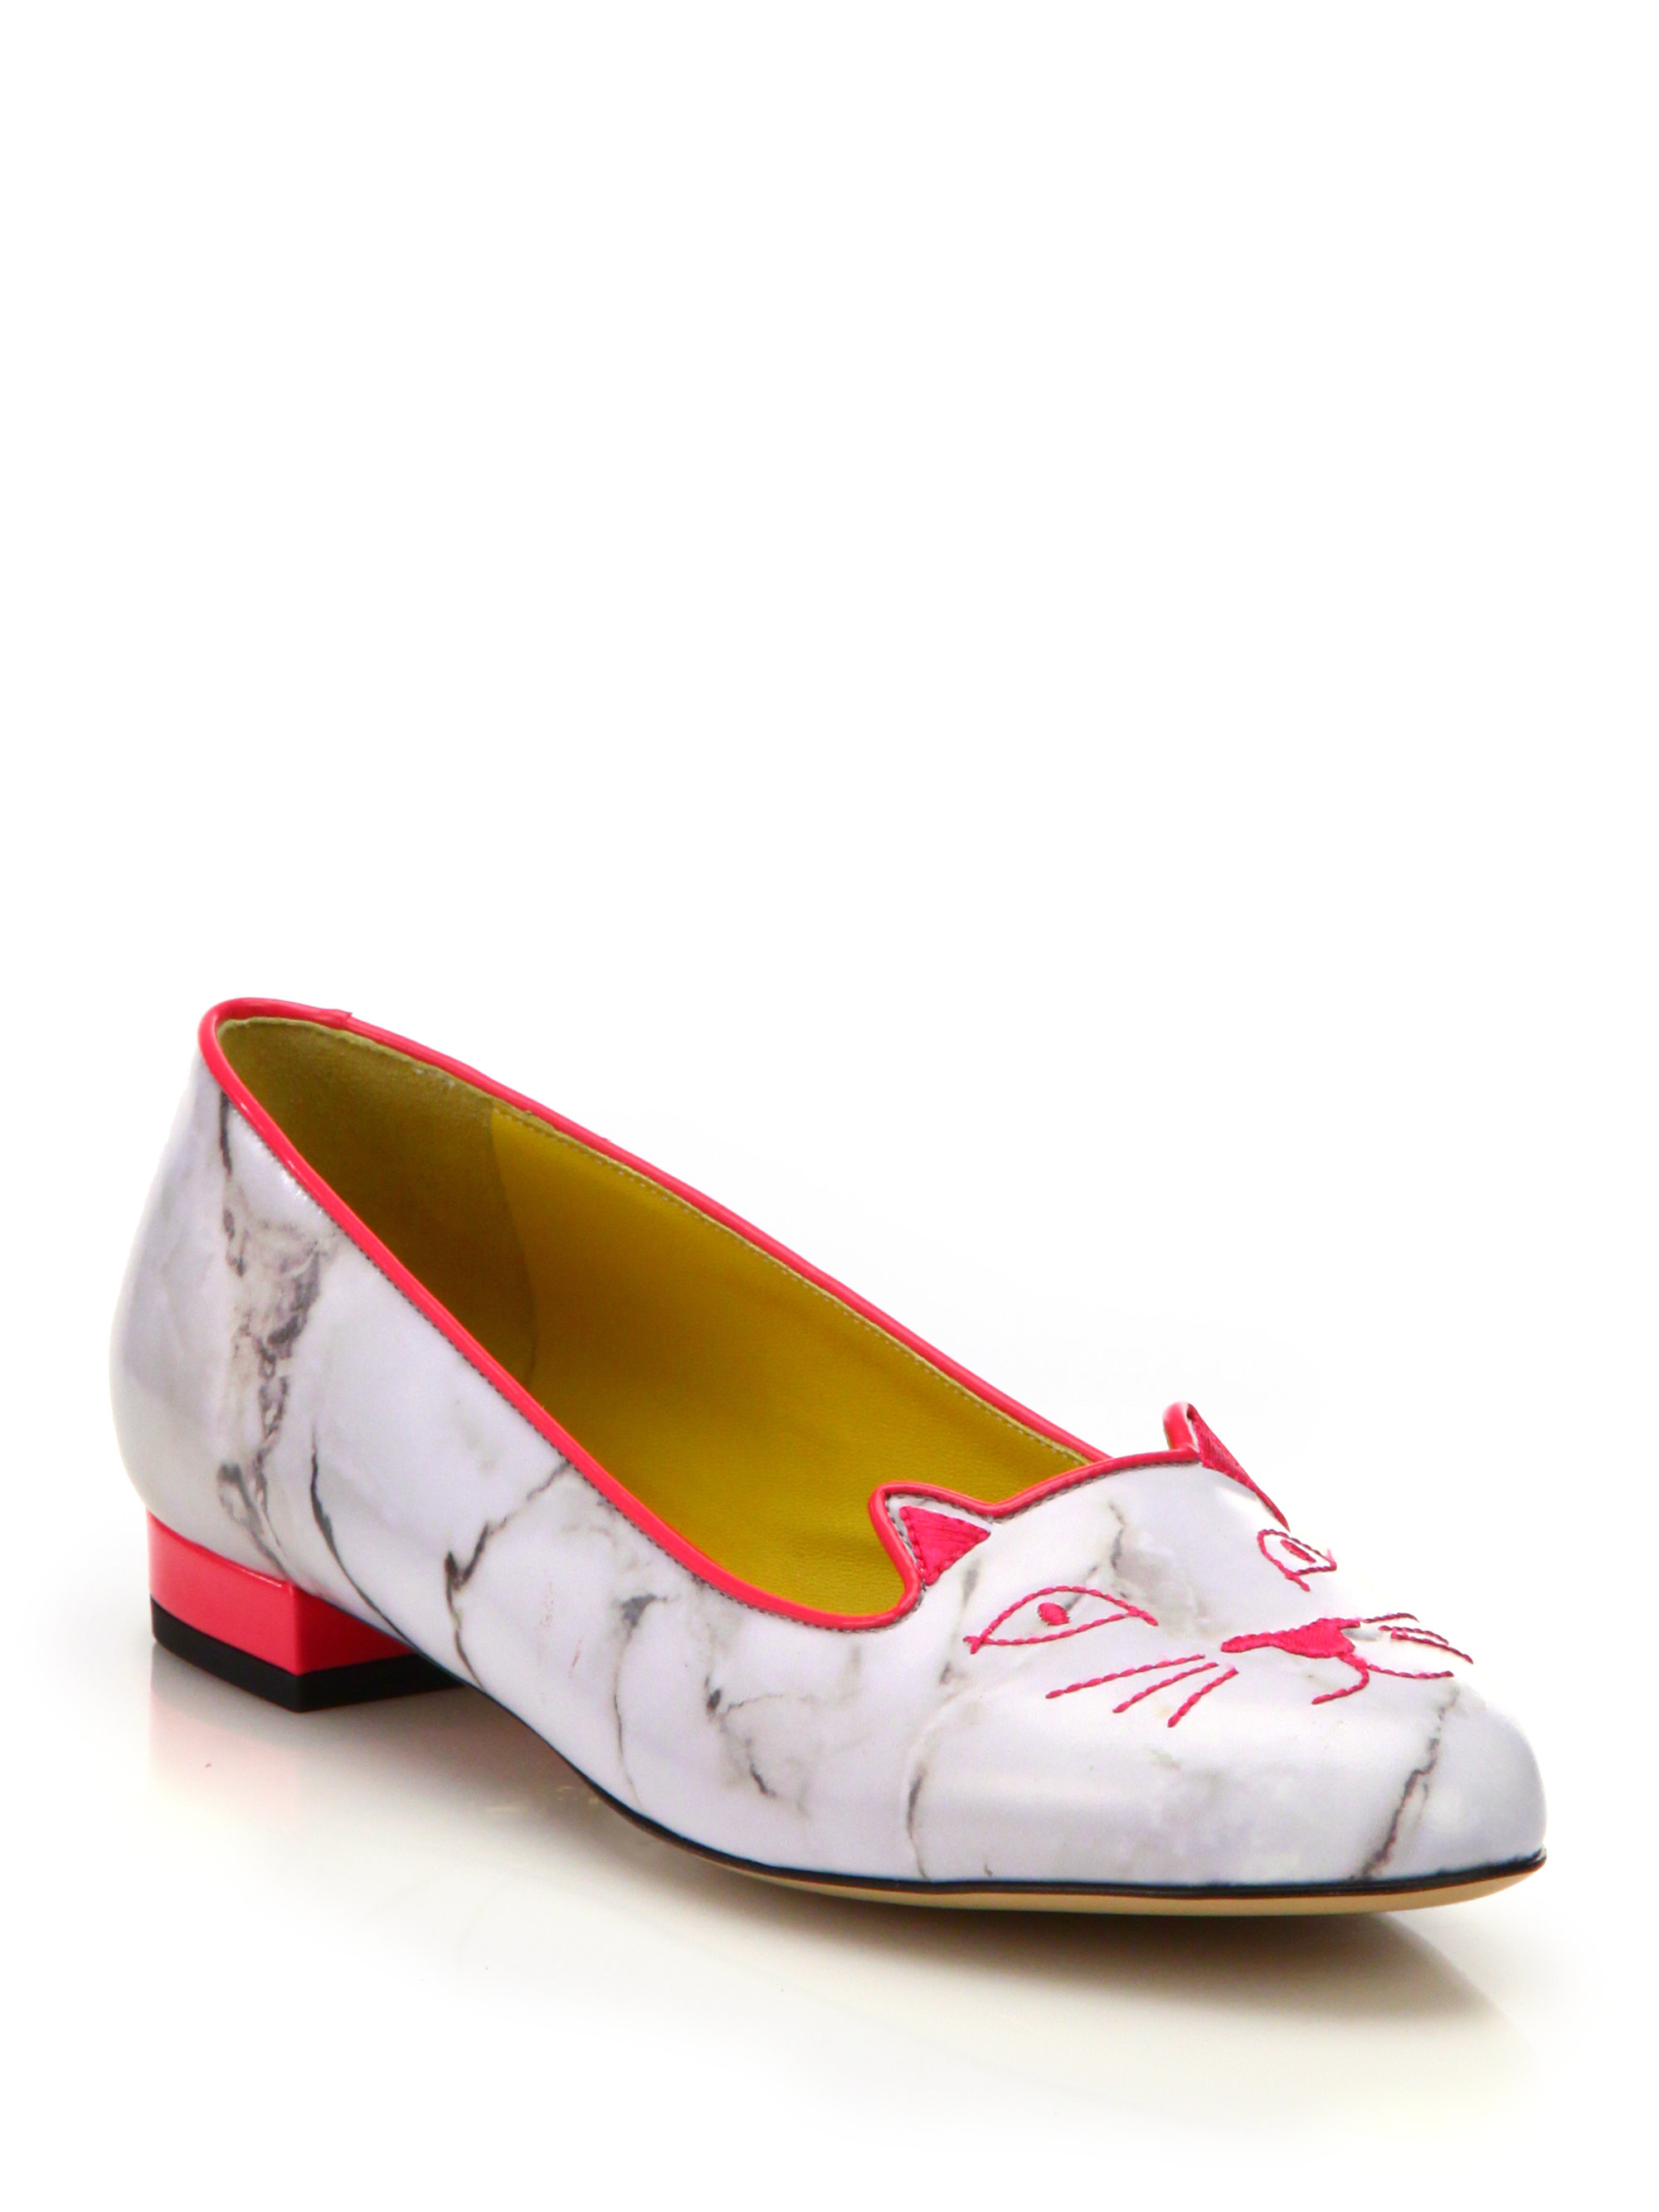 Charlotte Olympia kitten embroided ballerina shoes cheap visit clearance low price fee shipping KYVS1Ukh4